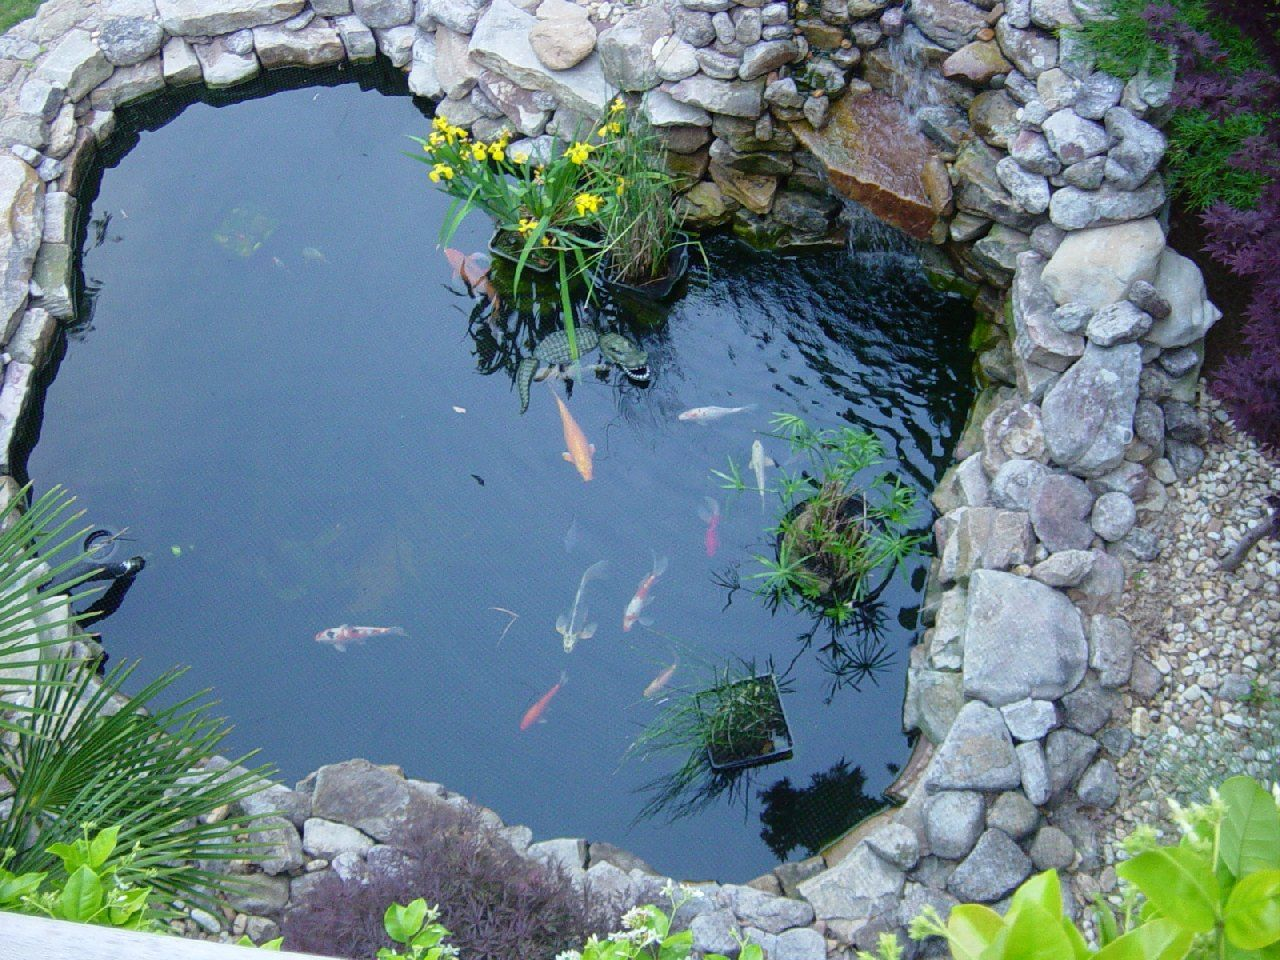 garden pond ideas pictures 20 koi pond ideas to create a unique garden koi